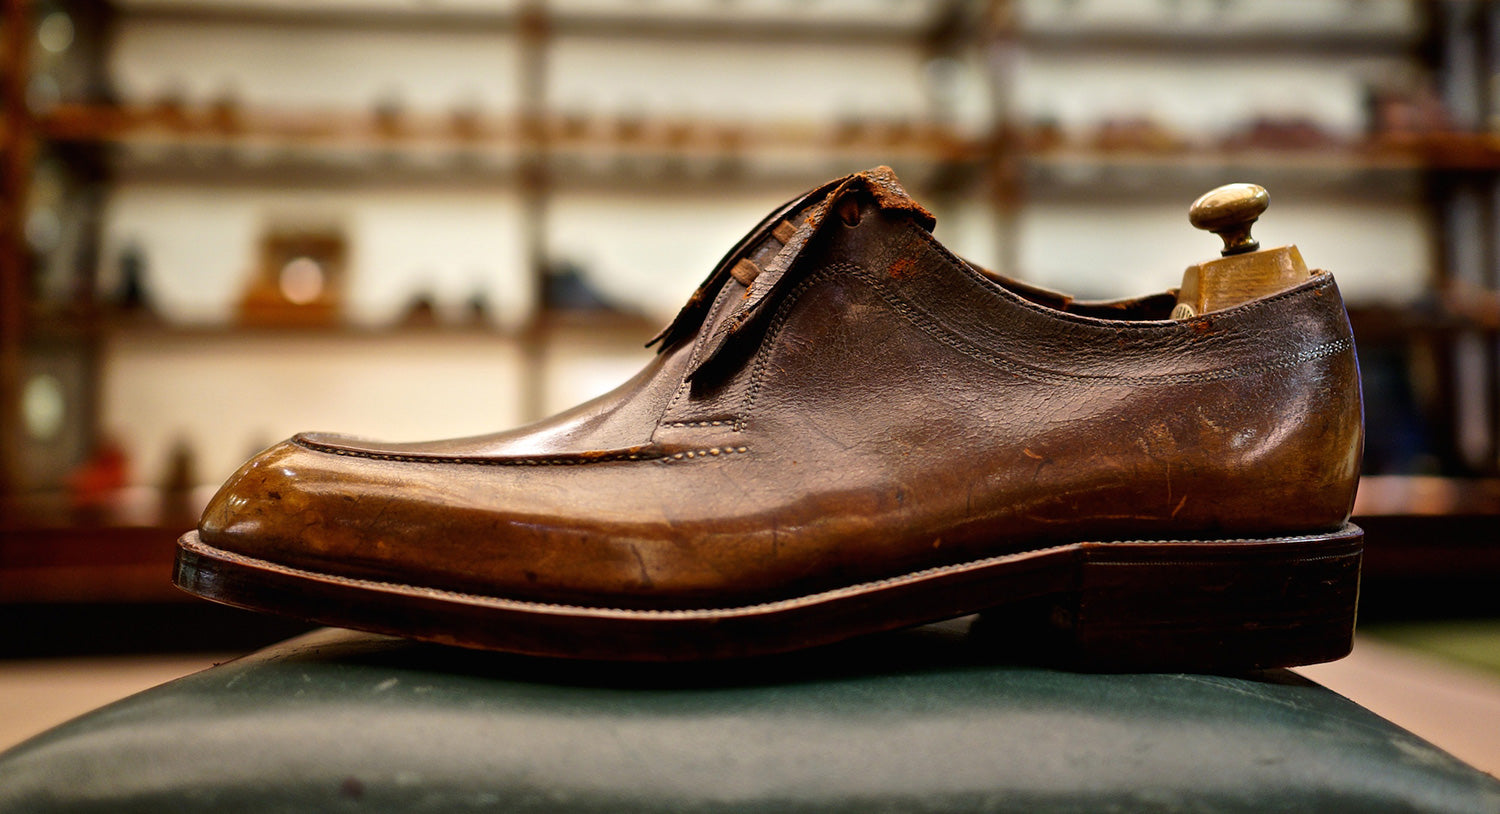 Foster & Son bespoke shoes